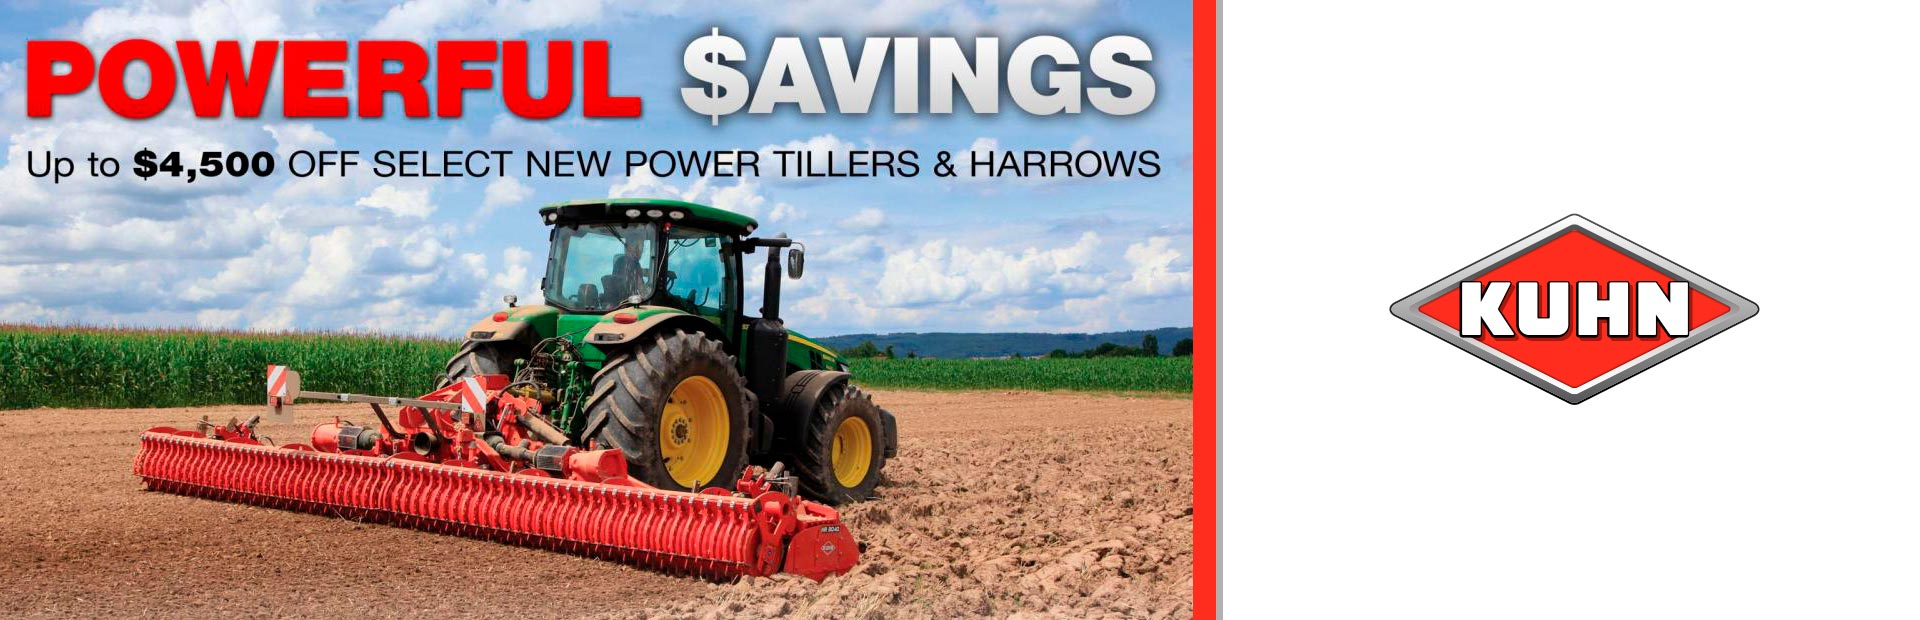 Kuhn: Powerful Savings